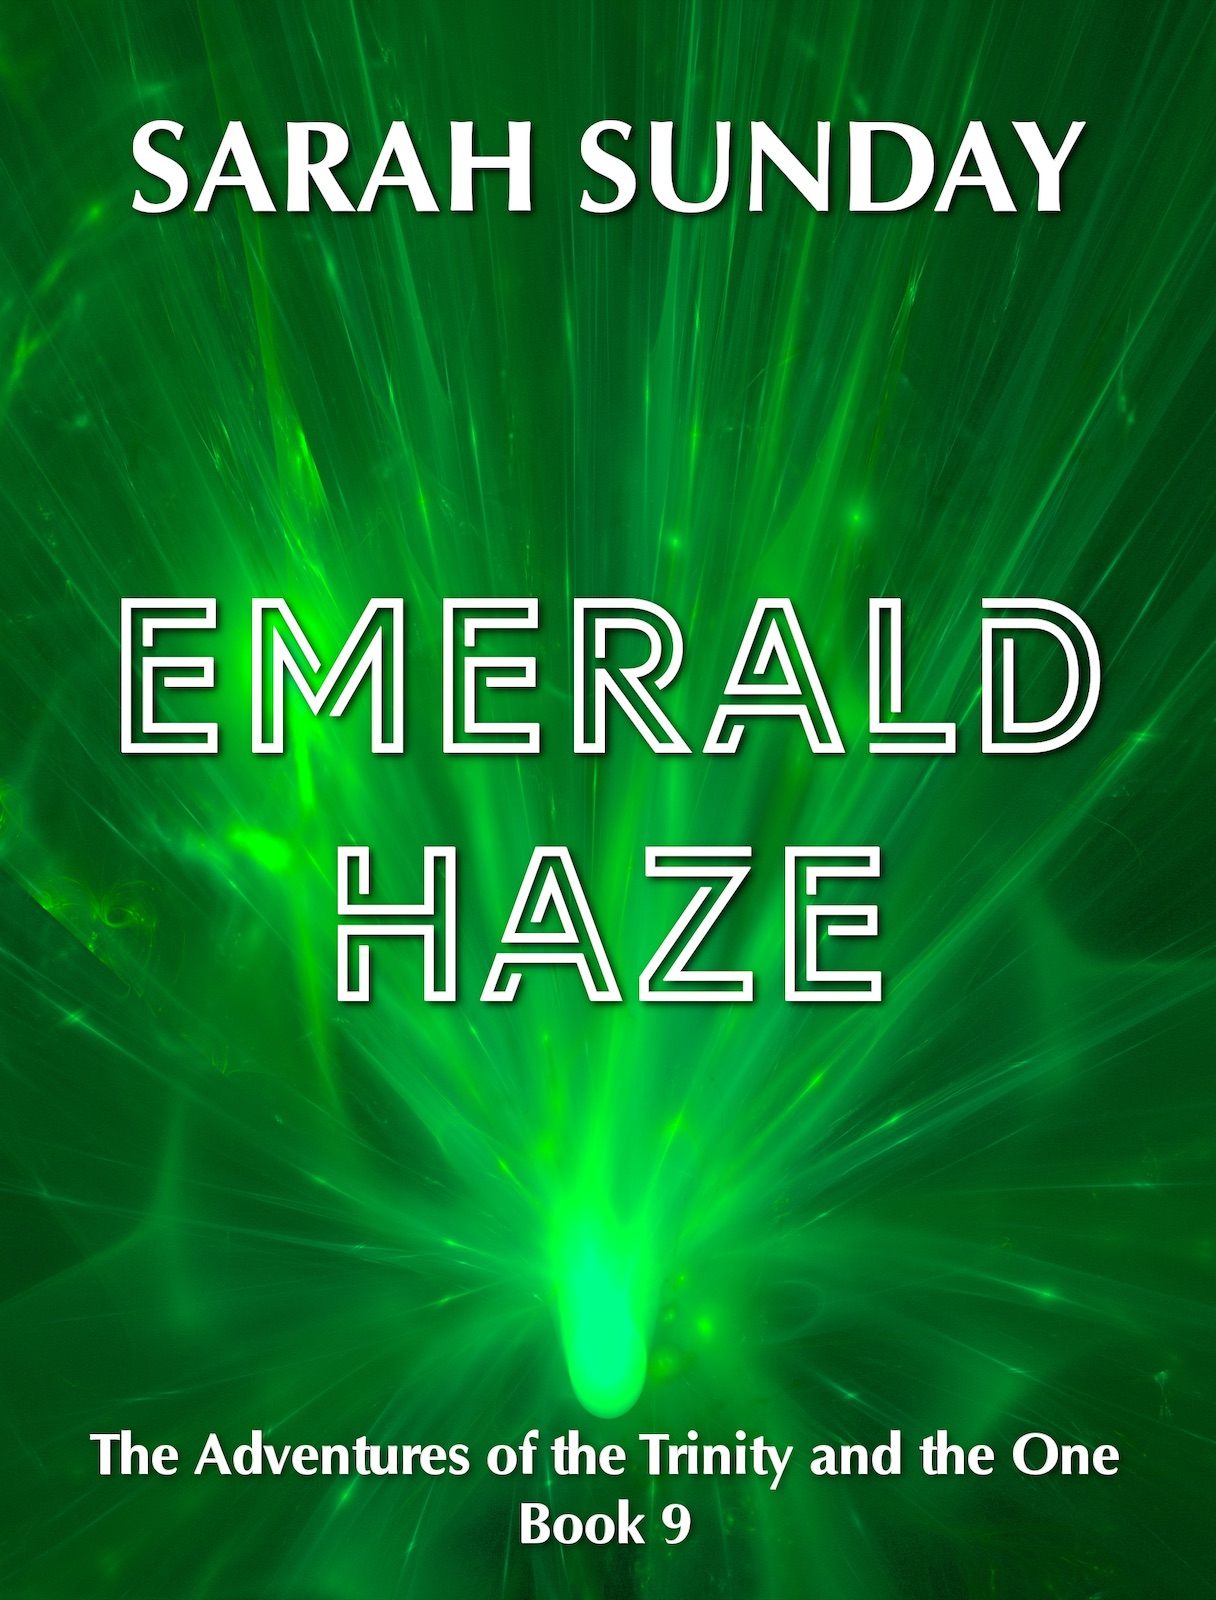 Emerald Haze RELEASED!